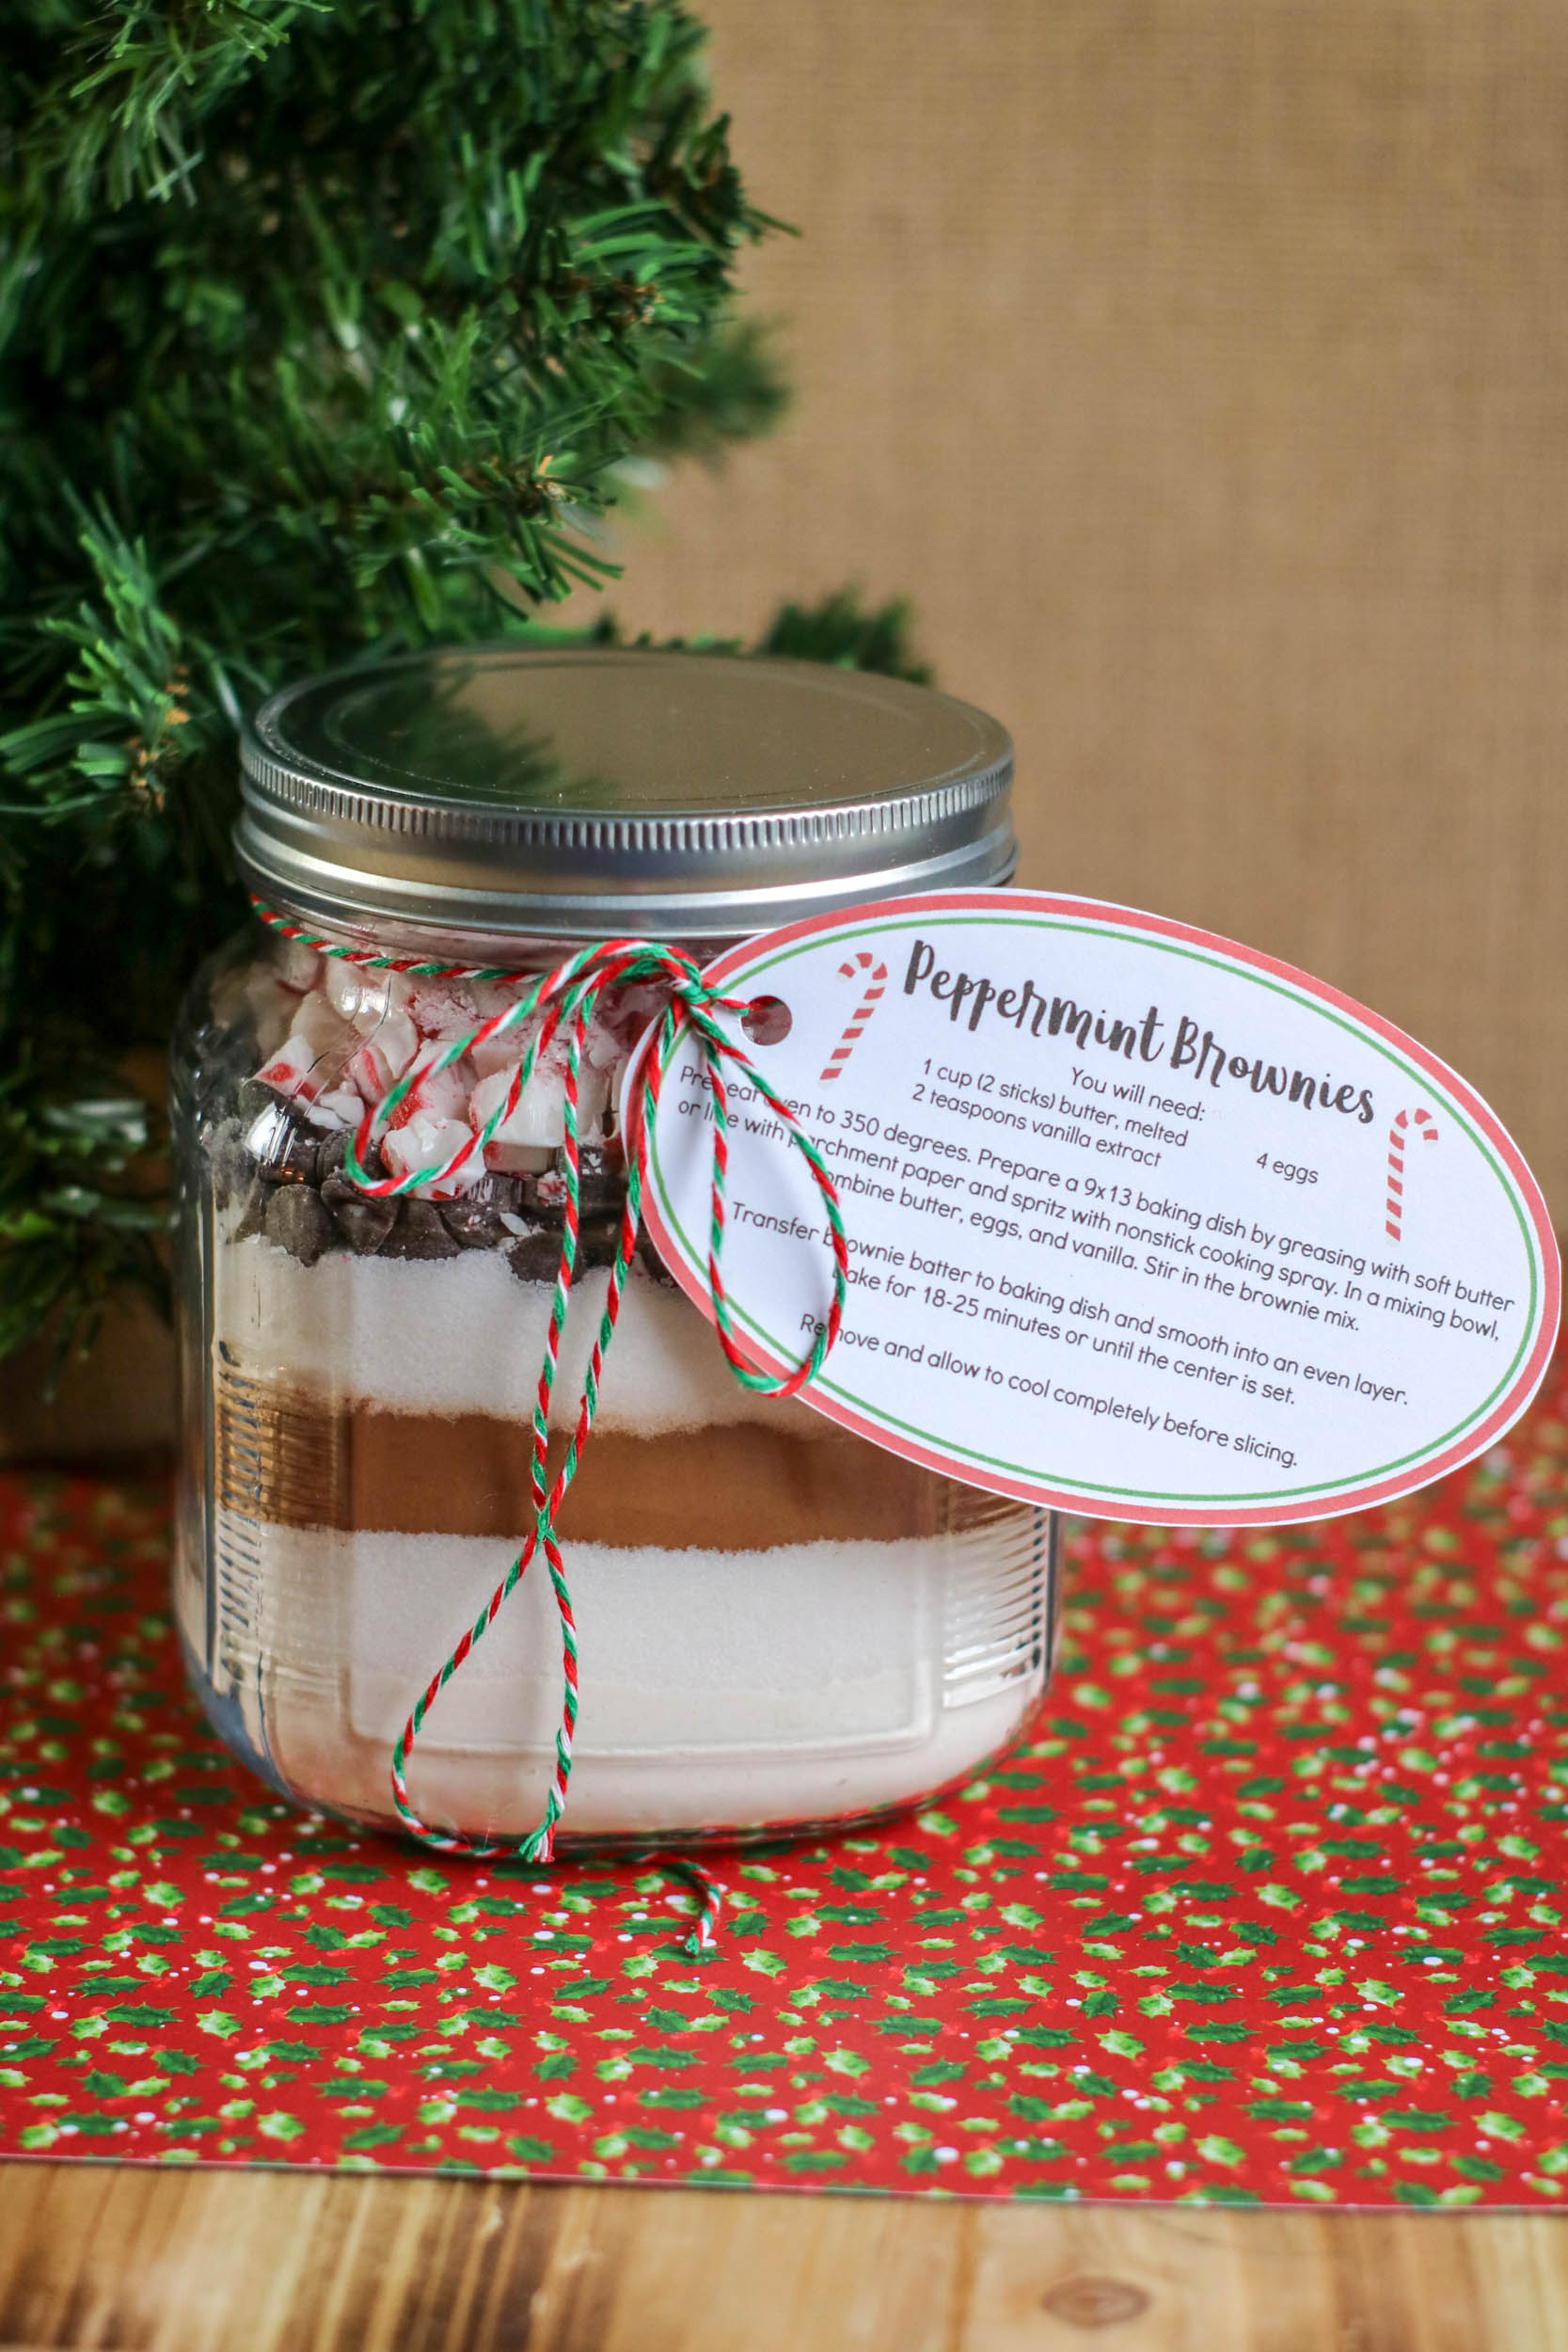 DIT peppermint Brownies in a Jar